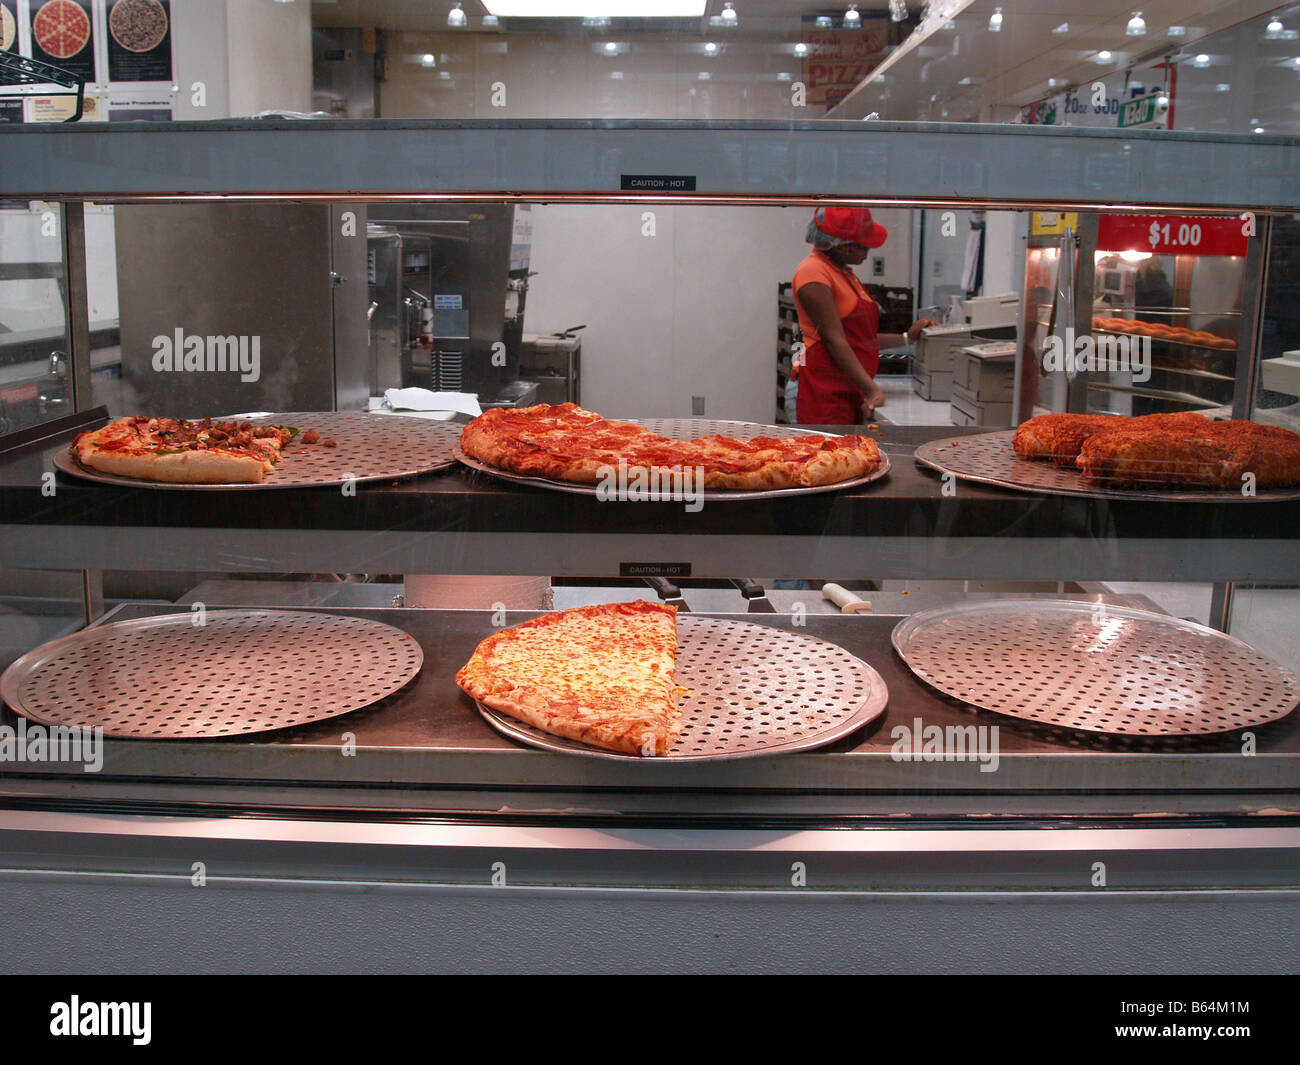 heat lamp food stock photos heat lamp food stock images alamy fast food pizza for at a food concession in a costco whole big box store